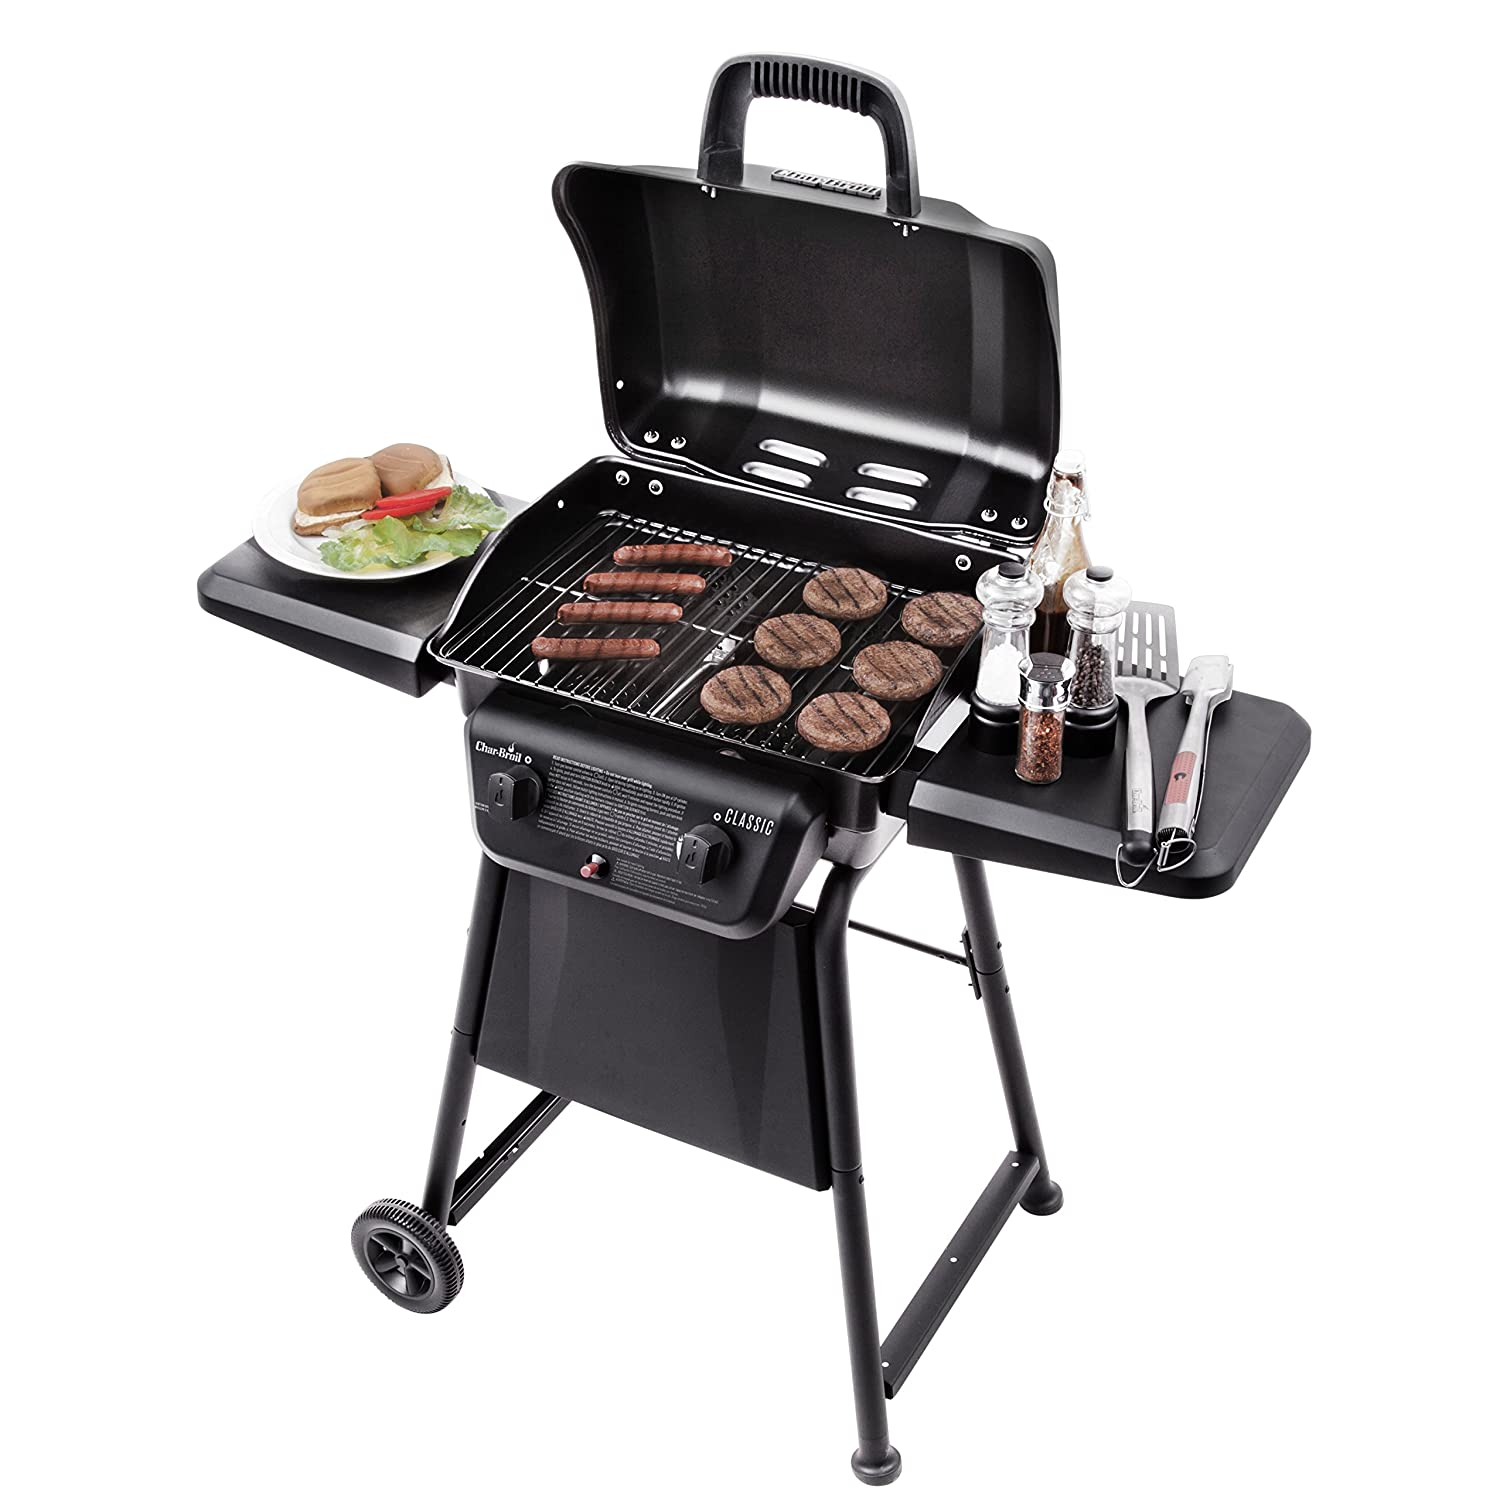 amazon com char broil classic 280 2 burner gas grill garden